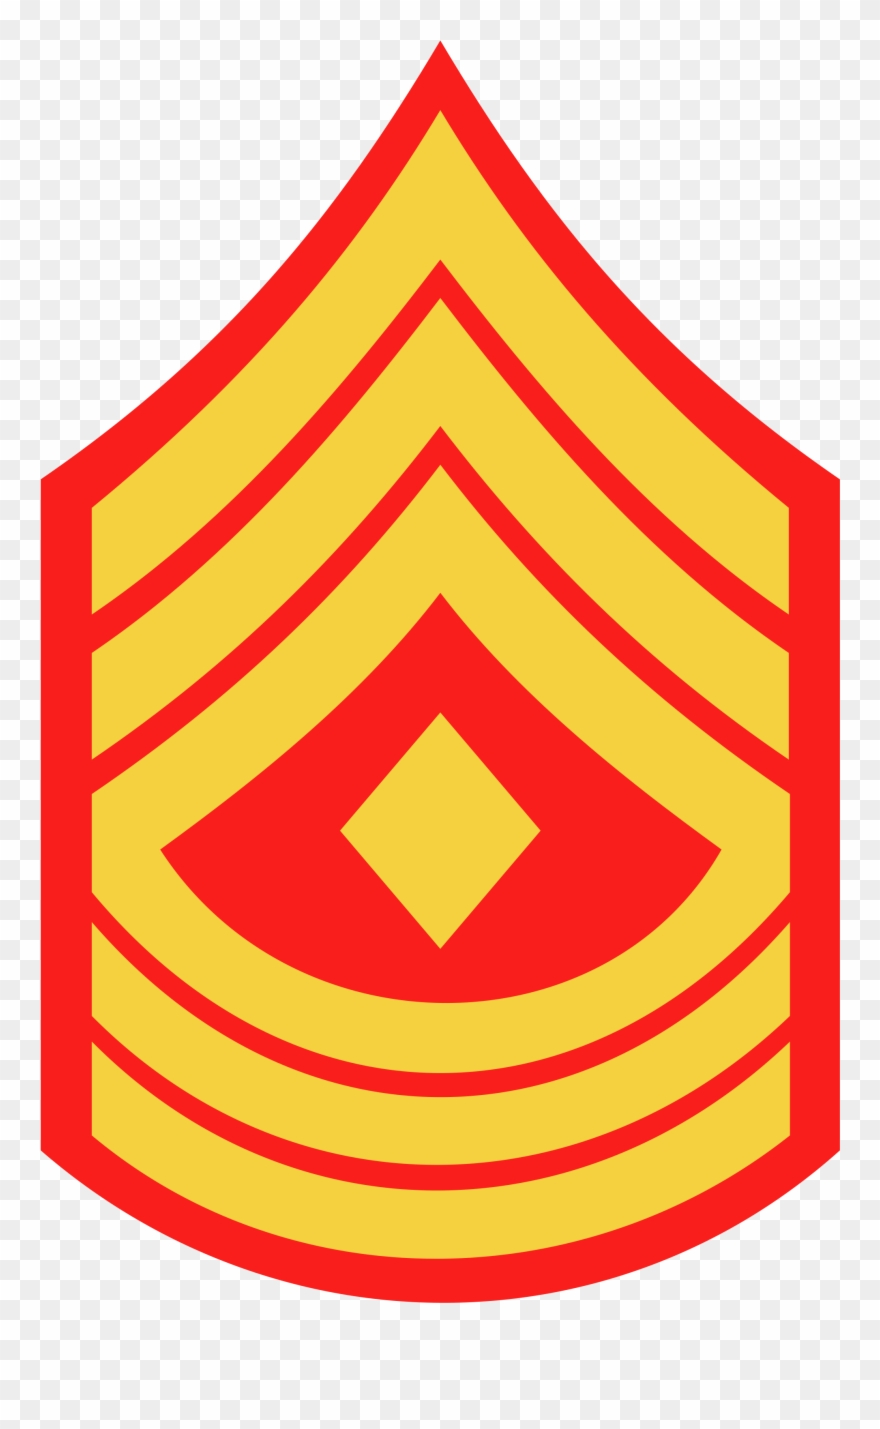 Staff sergeant clipart clip art black and white library First Sergeant - Sergeant Major Usmc Rank Clipart (#407584 ... clip art black and white library